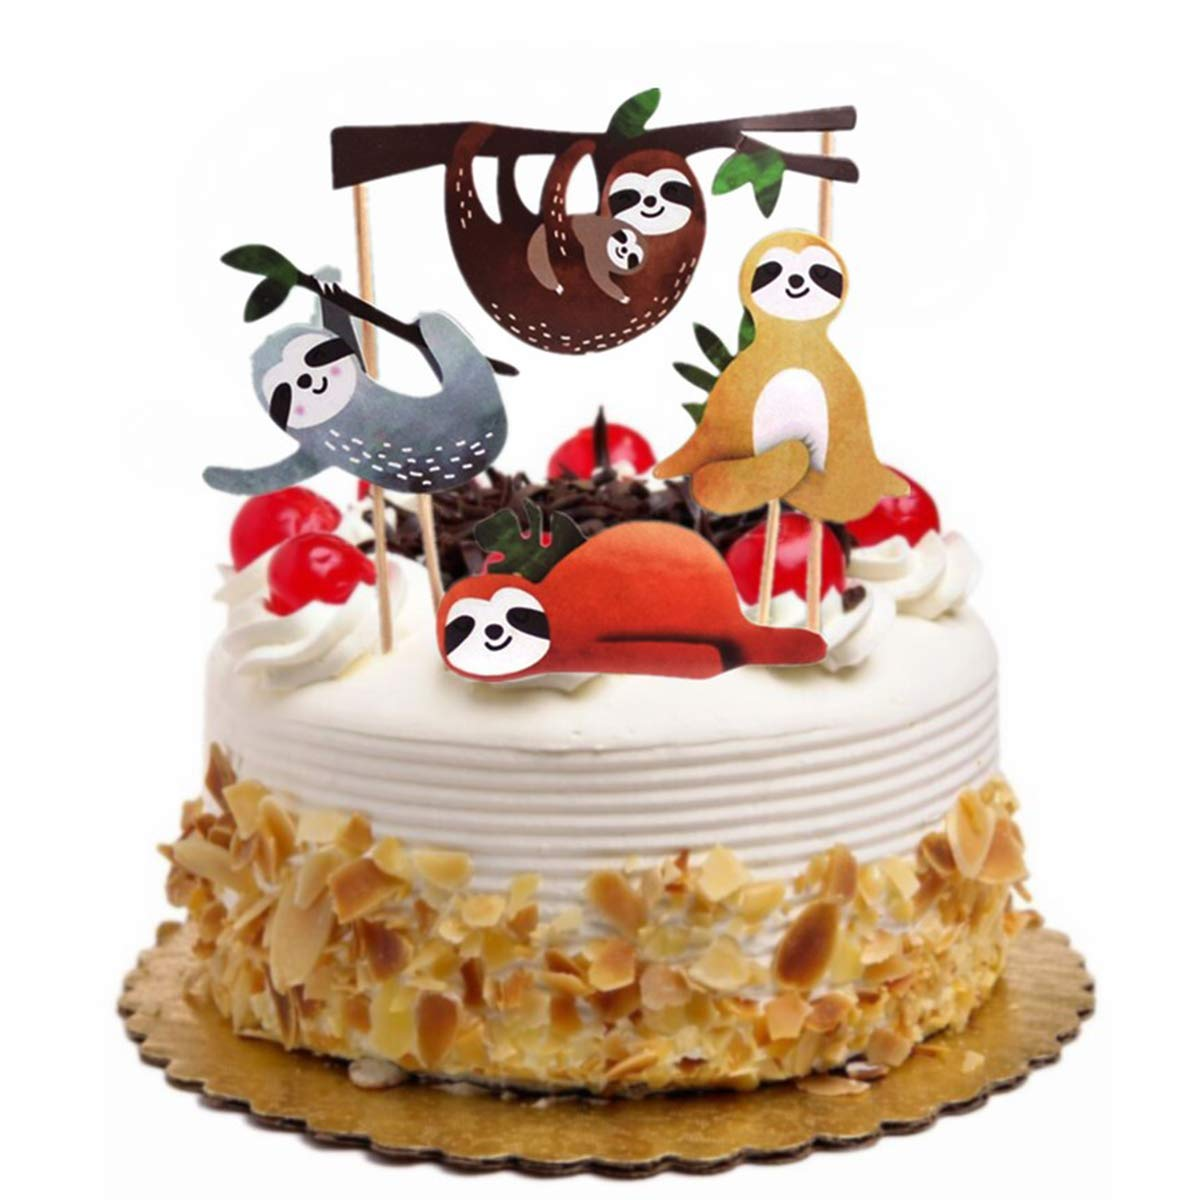 Magnificent Nuobesty 4Pcs Sloth Cake Toppers Animal Birthday Party Fruit Cake Funny Birthday Cards Online Alyptdamsfinfo